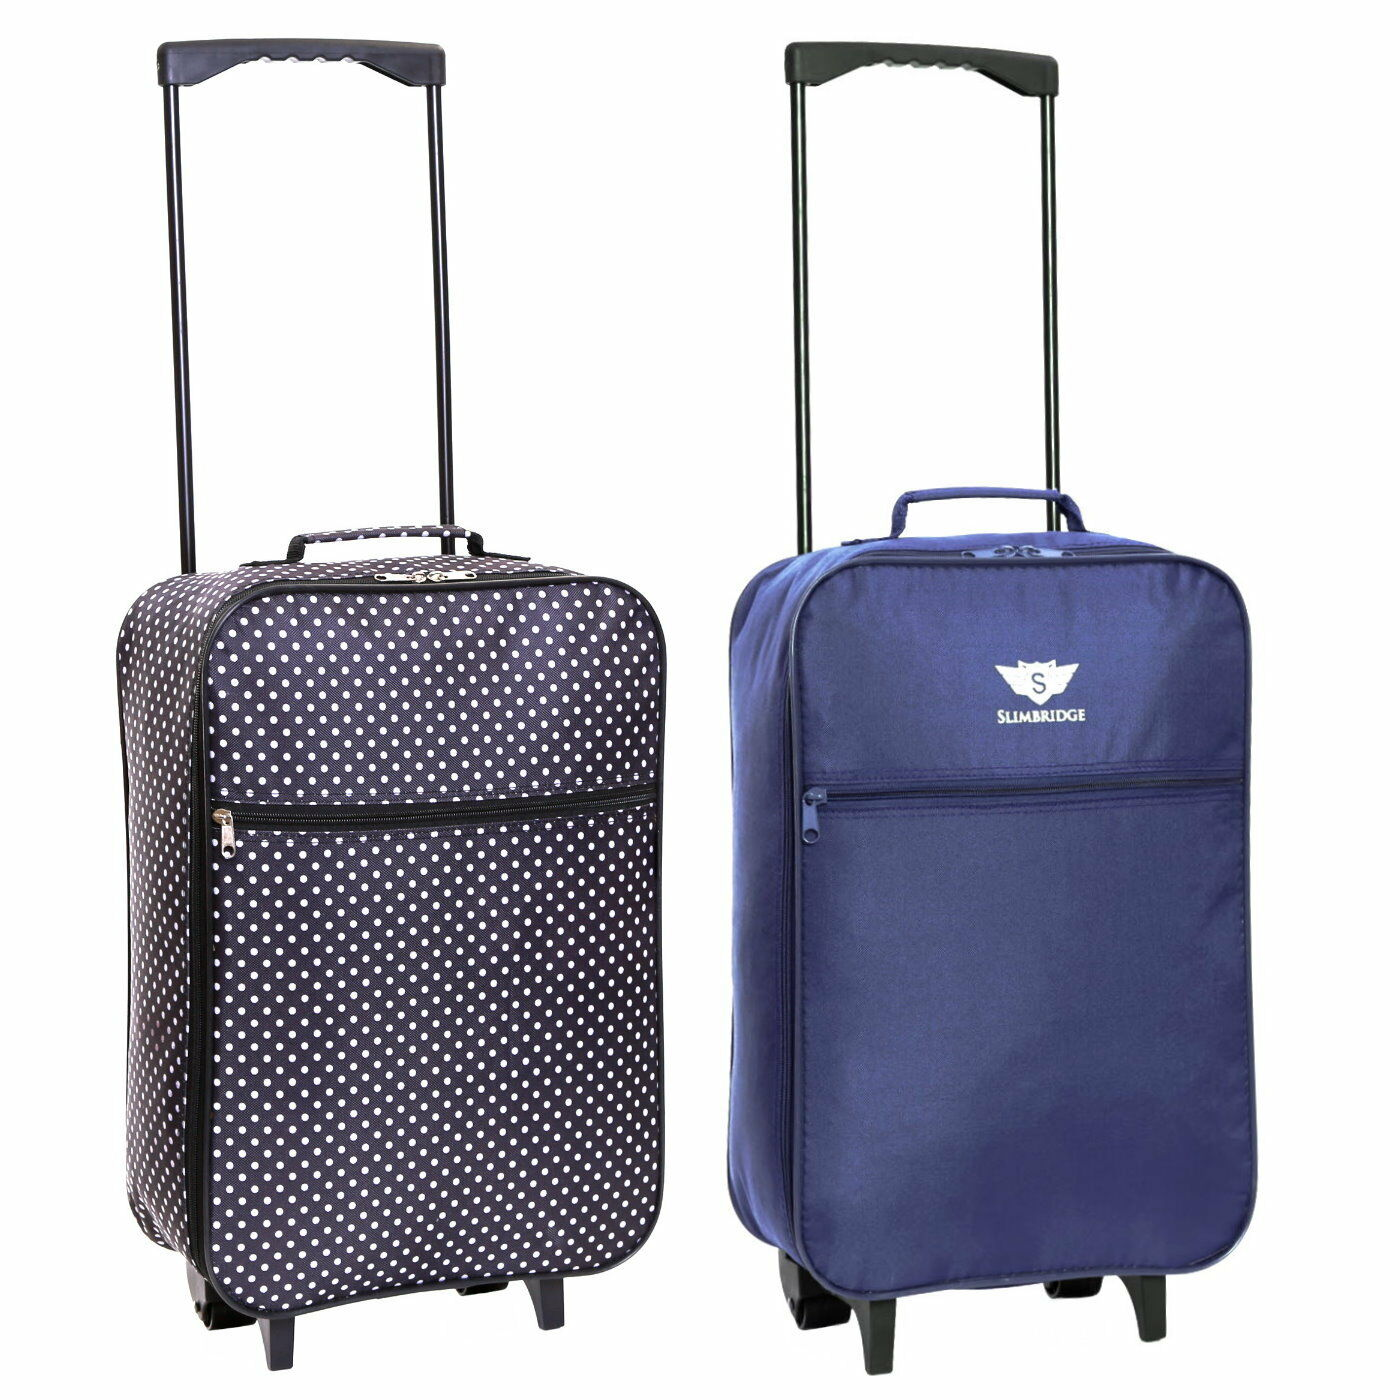 71b2a3dcd016 Extra Light 55cm Ryanair Cabin Approved Wheels Suitcase Luggage Holdall Case  Bag for sale online | eBay